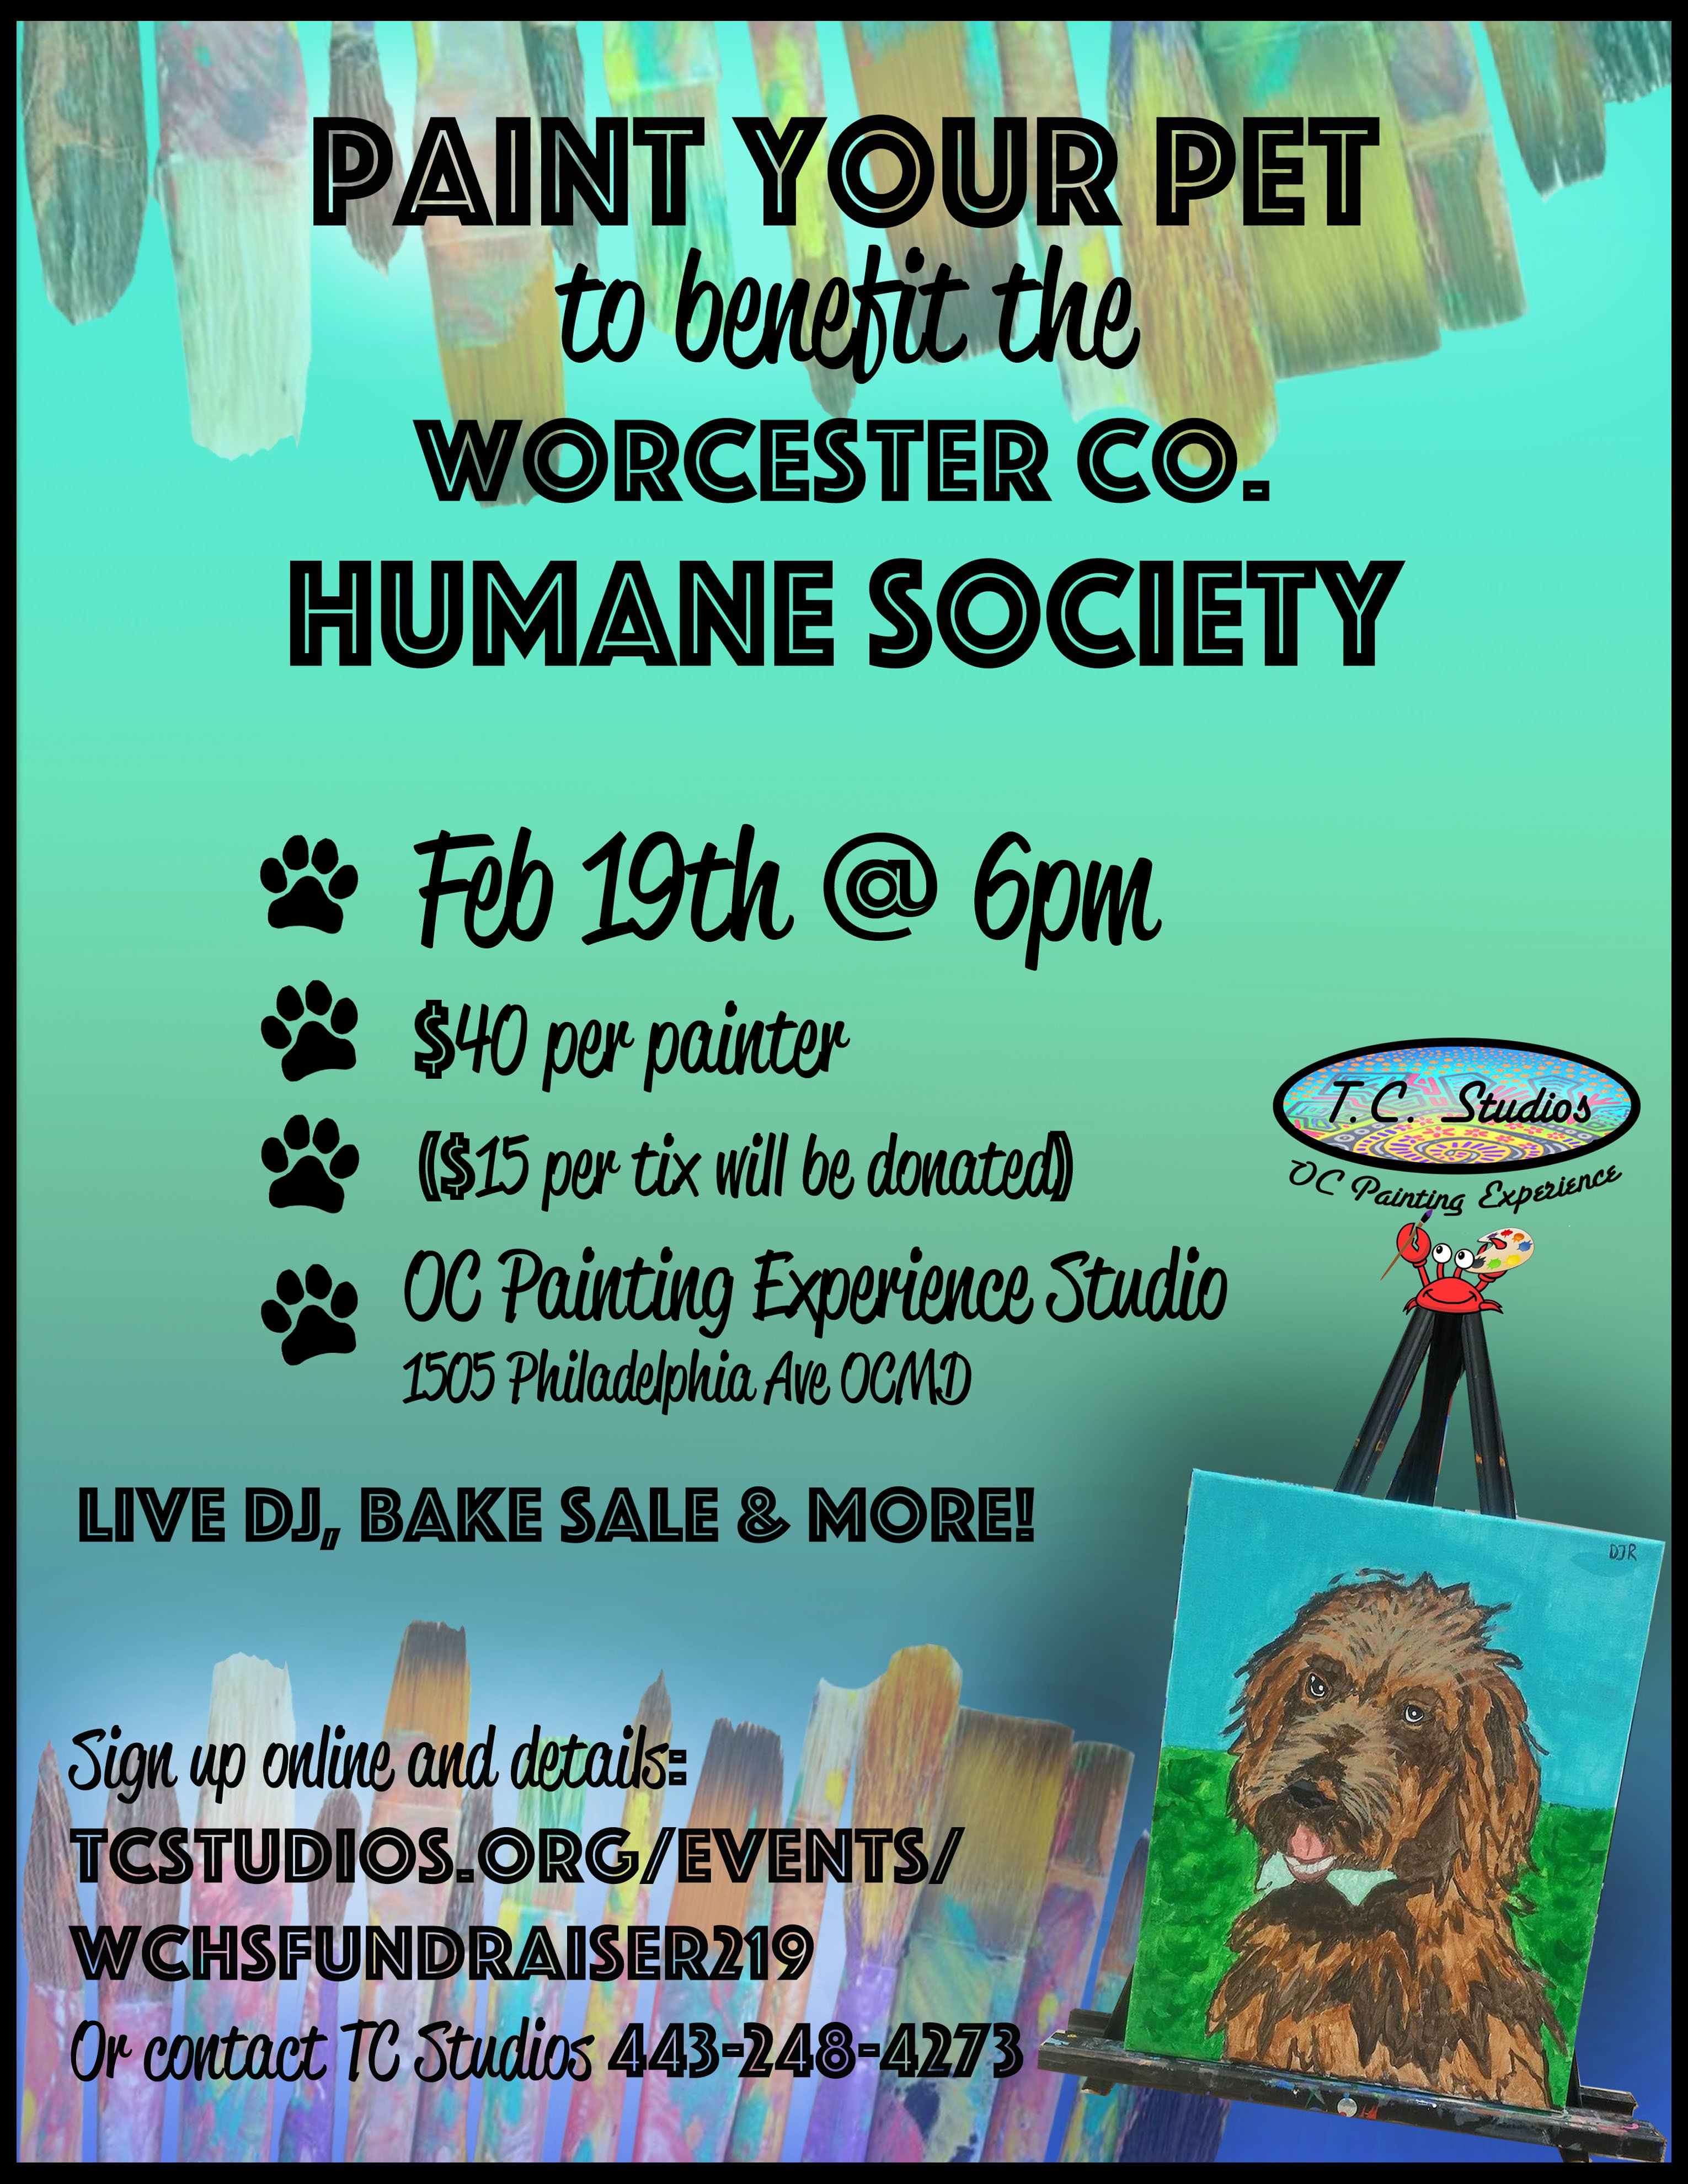 paint-your-pet-event-february-19